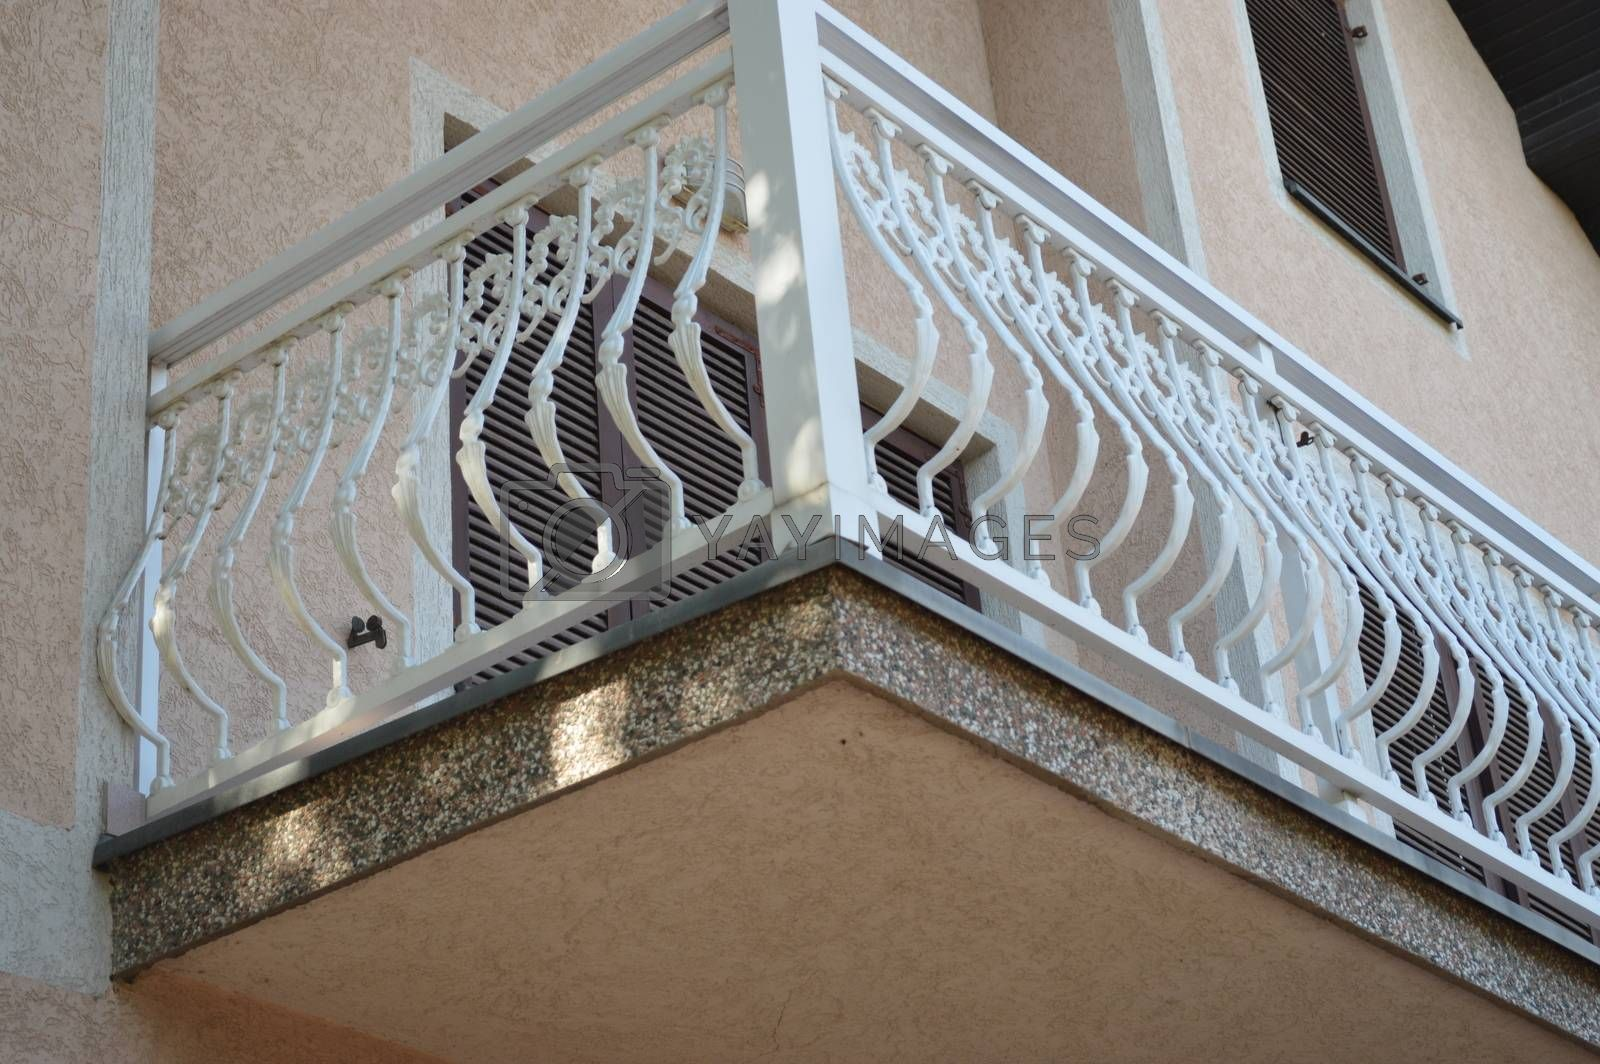 Cast iron balconies